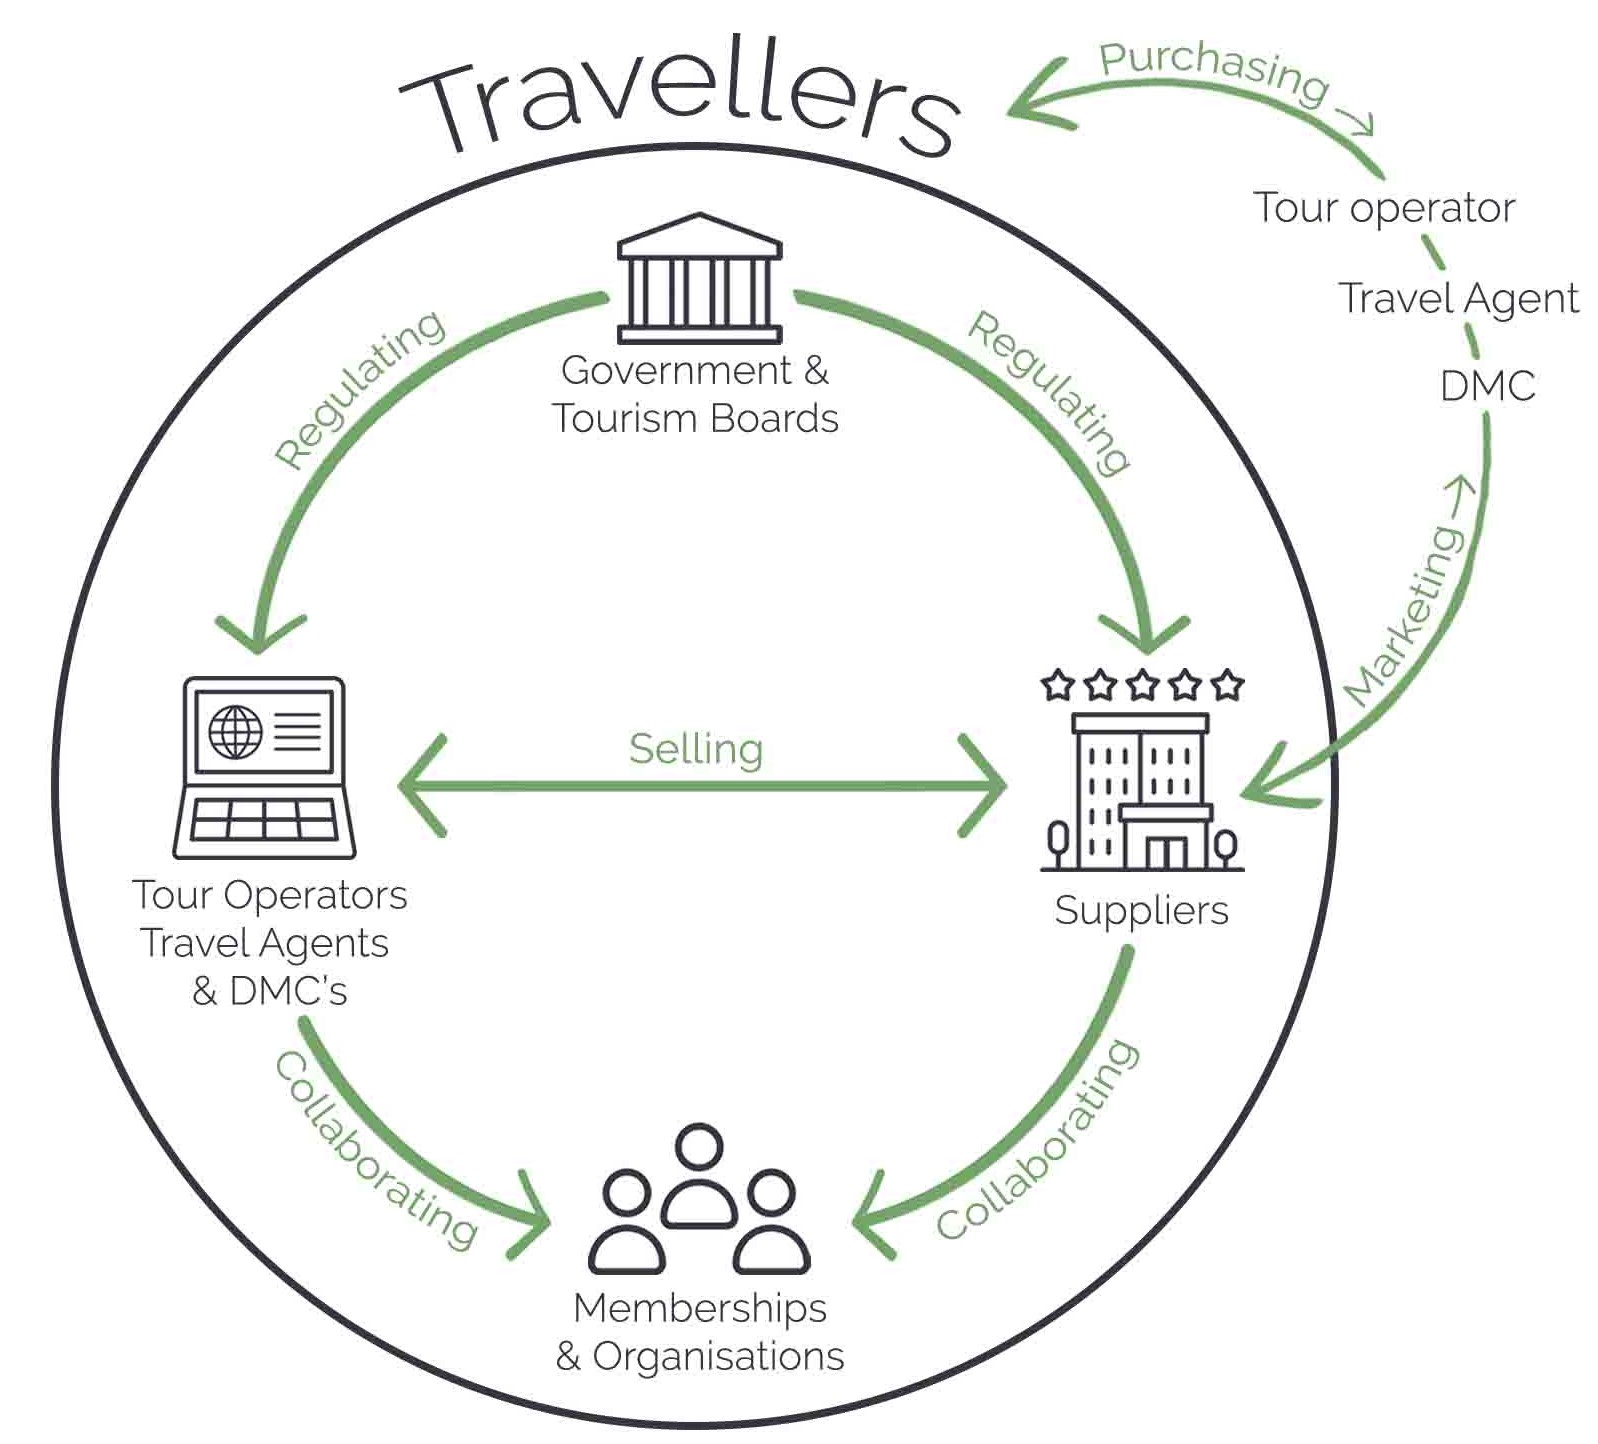 How does the travel industry work?